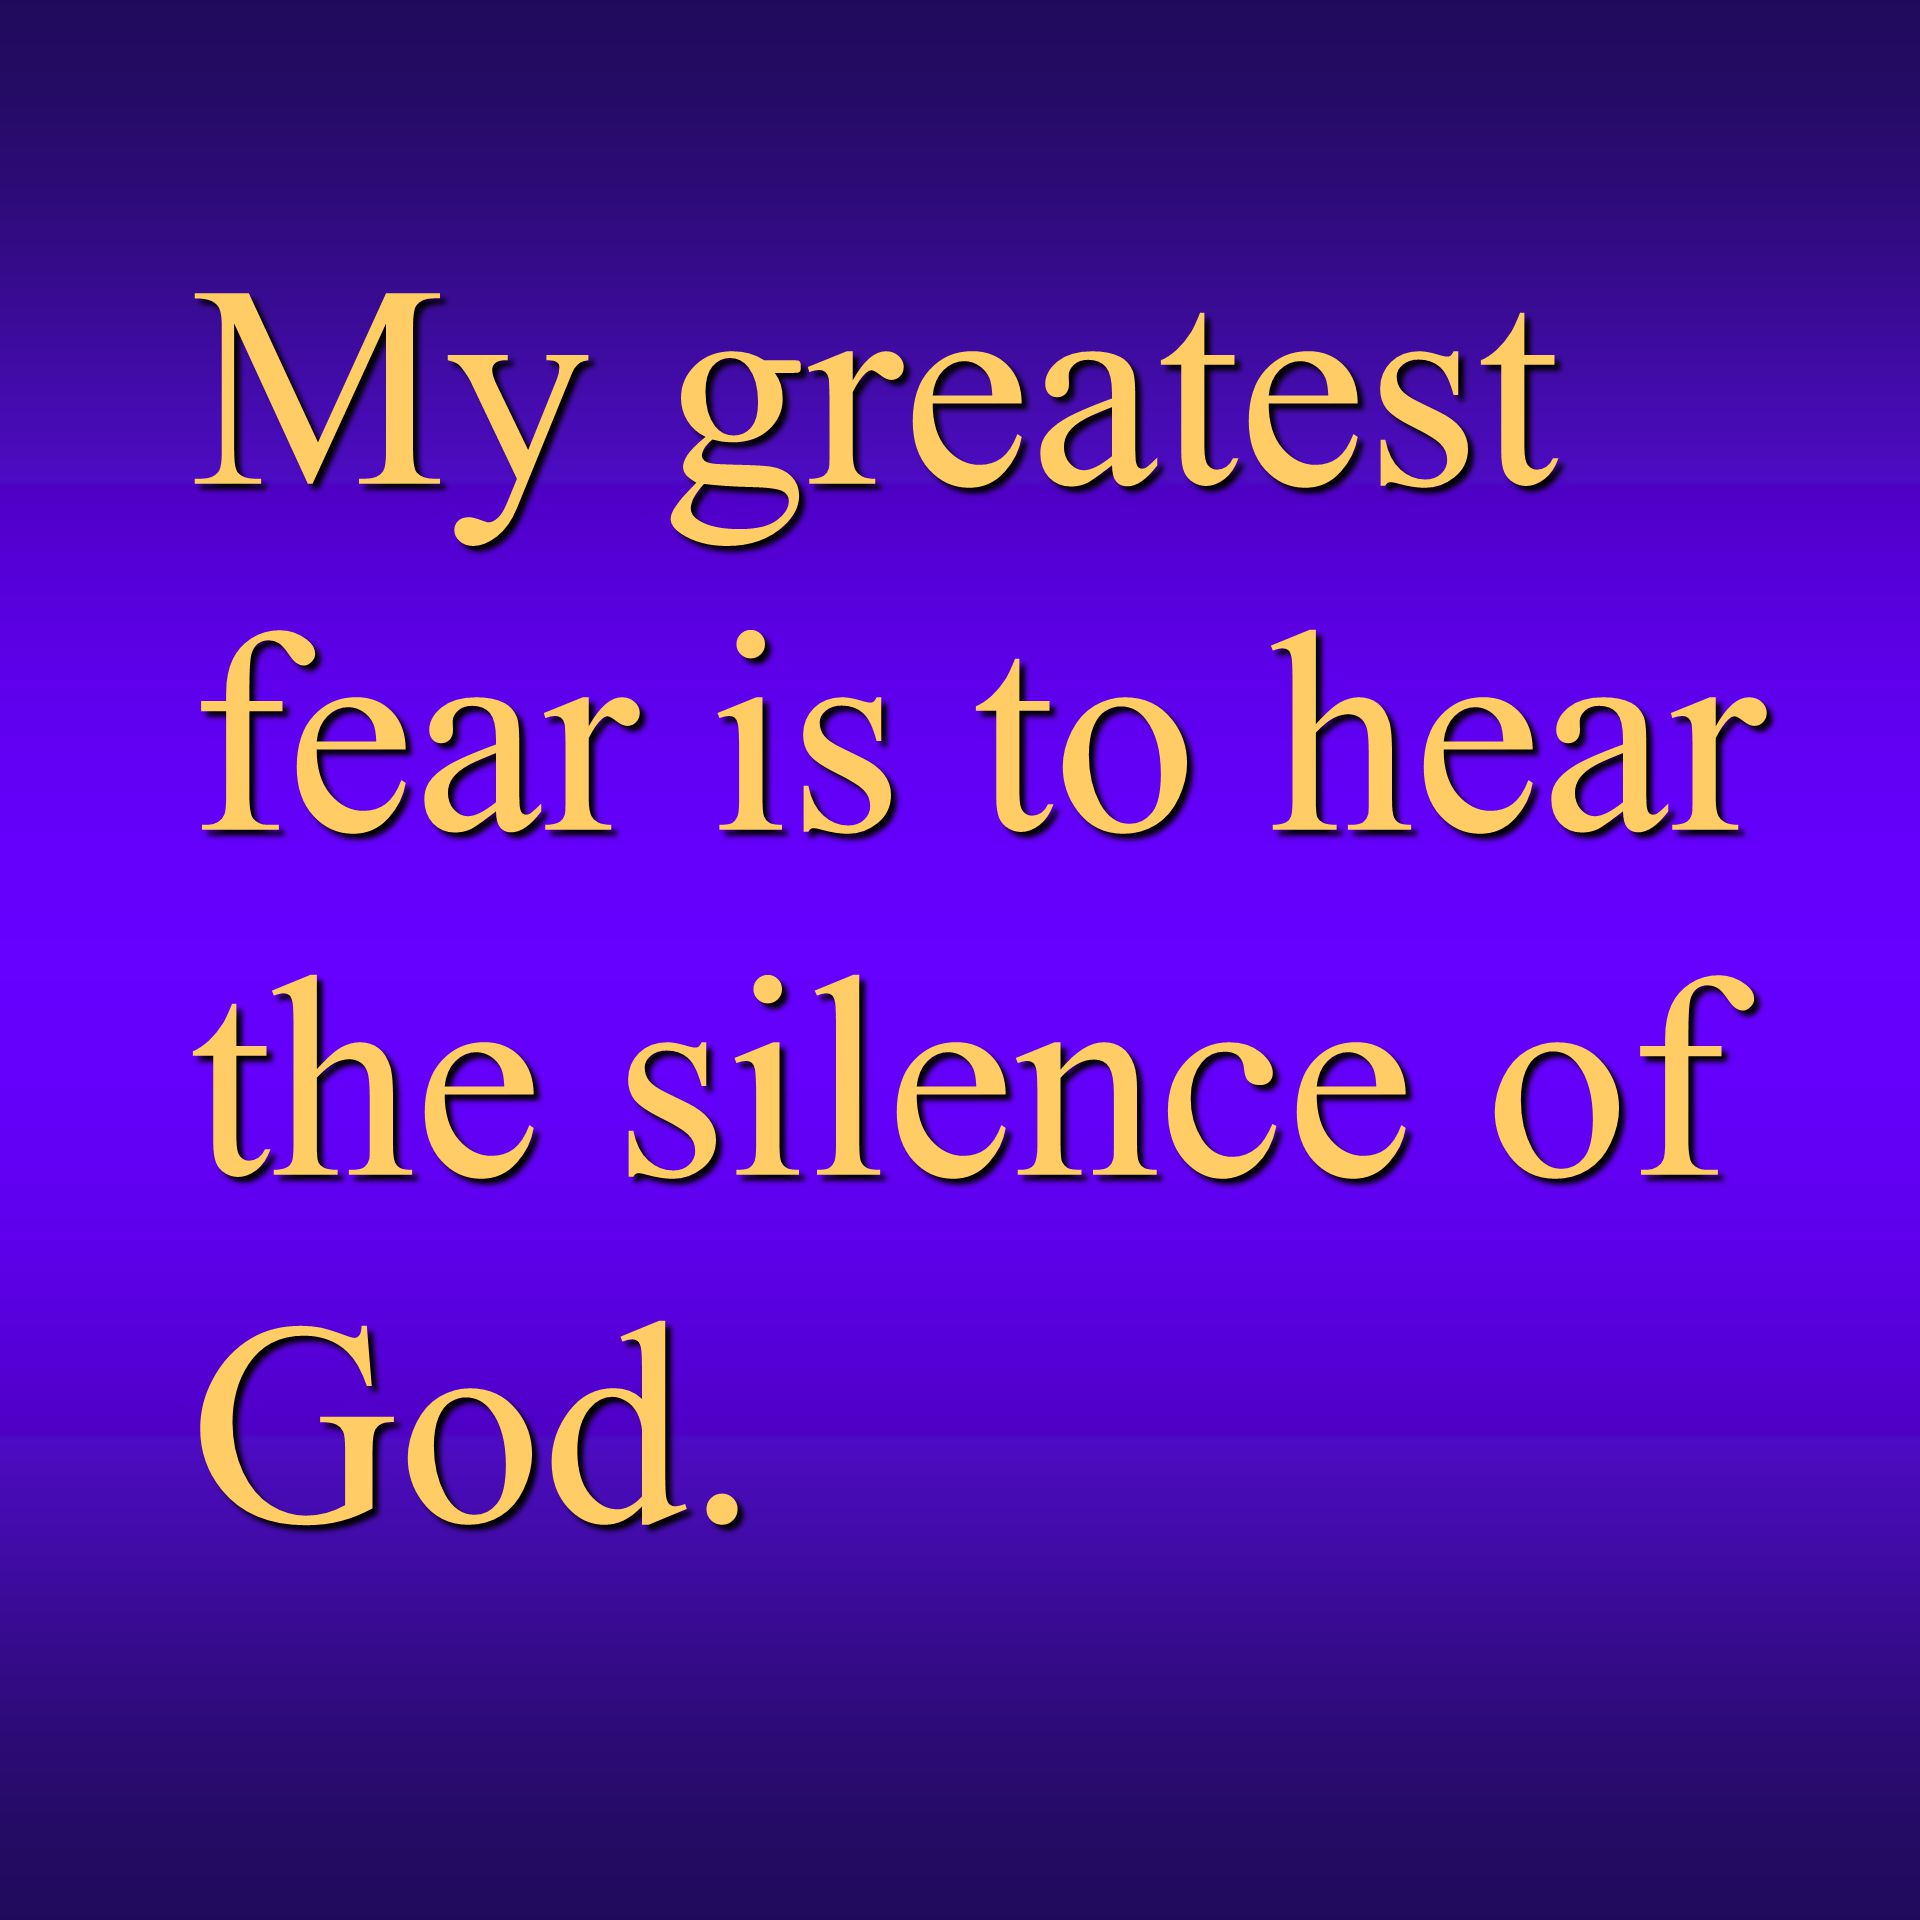 My greatest fear is to hear the silence of God.